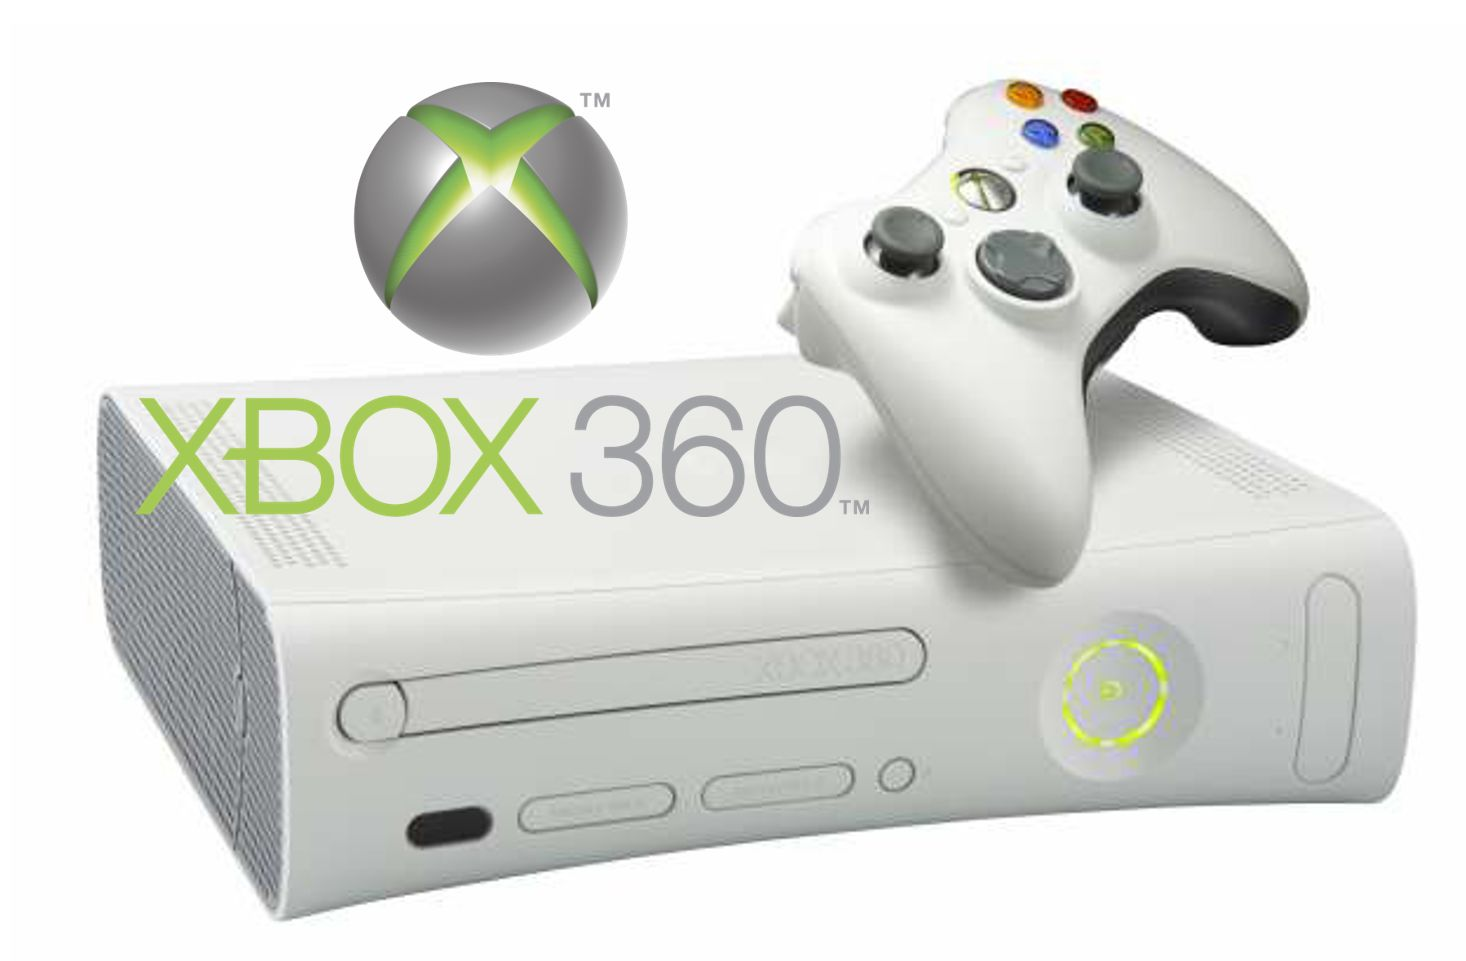 Saying Farewell To A Decade Of Xbox 360